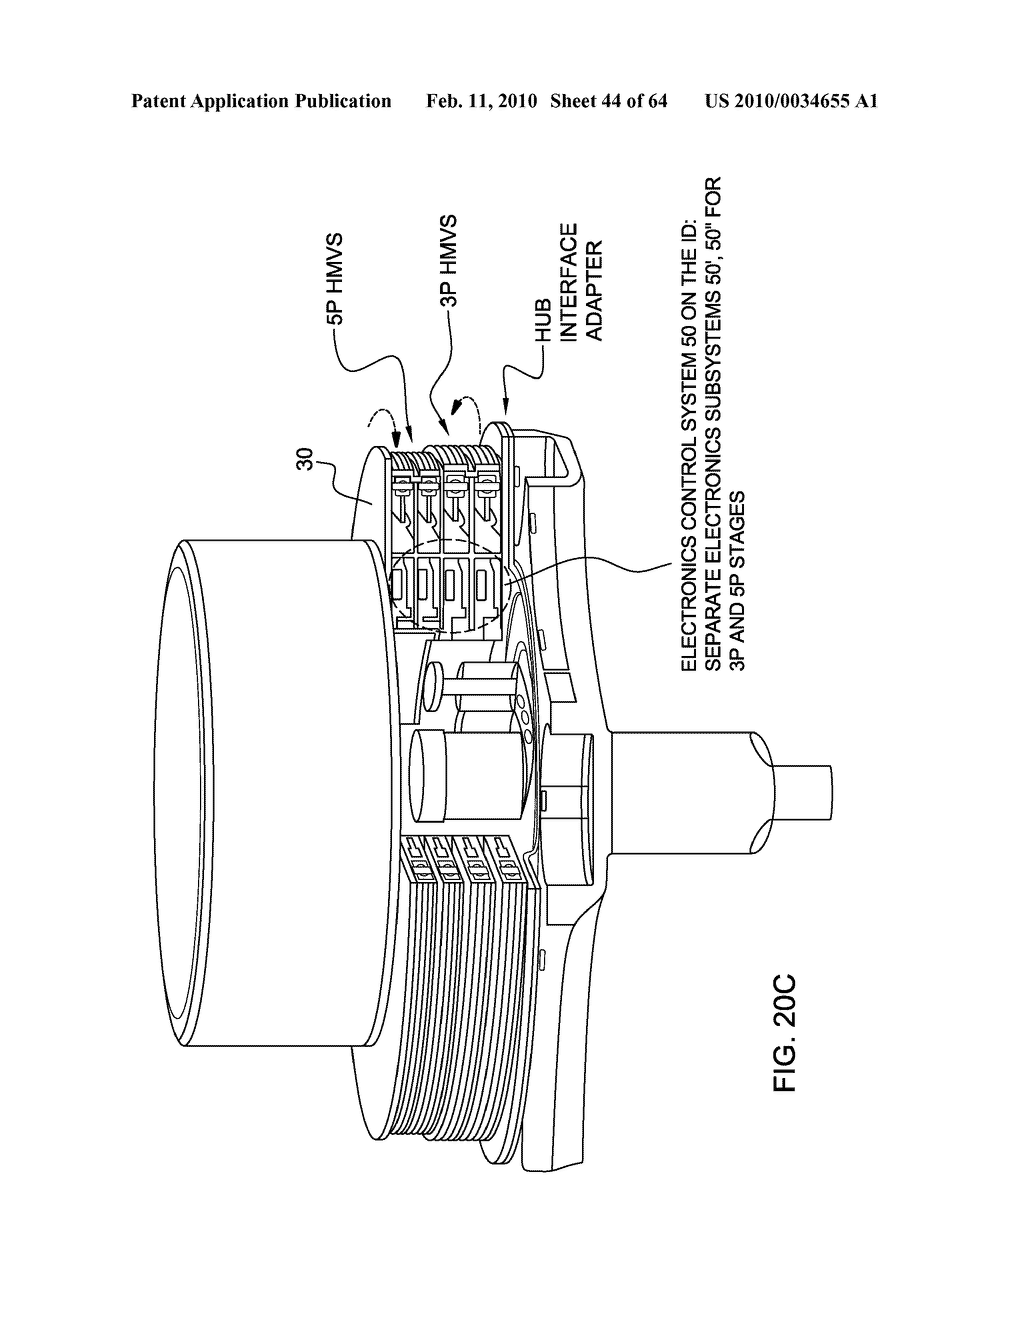 HELICOPTER HUB MOUNTED VIBRATION CONTROL AND CIRCULAR FORCE GENERATION SYSTEMS FOR CANCELING VIBRATIONS - diagram, schematic, and image 45